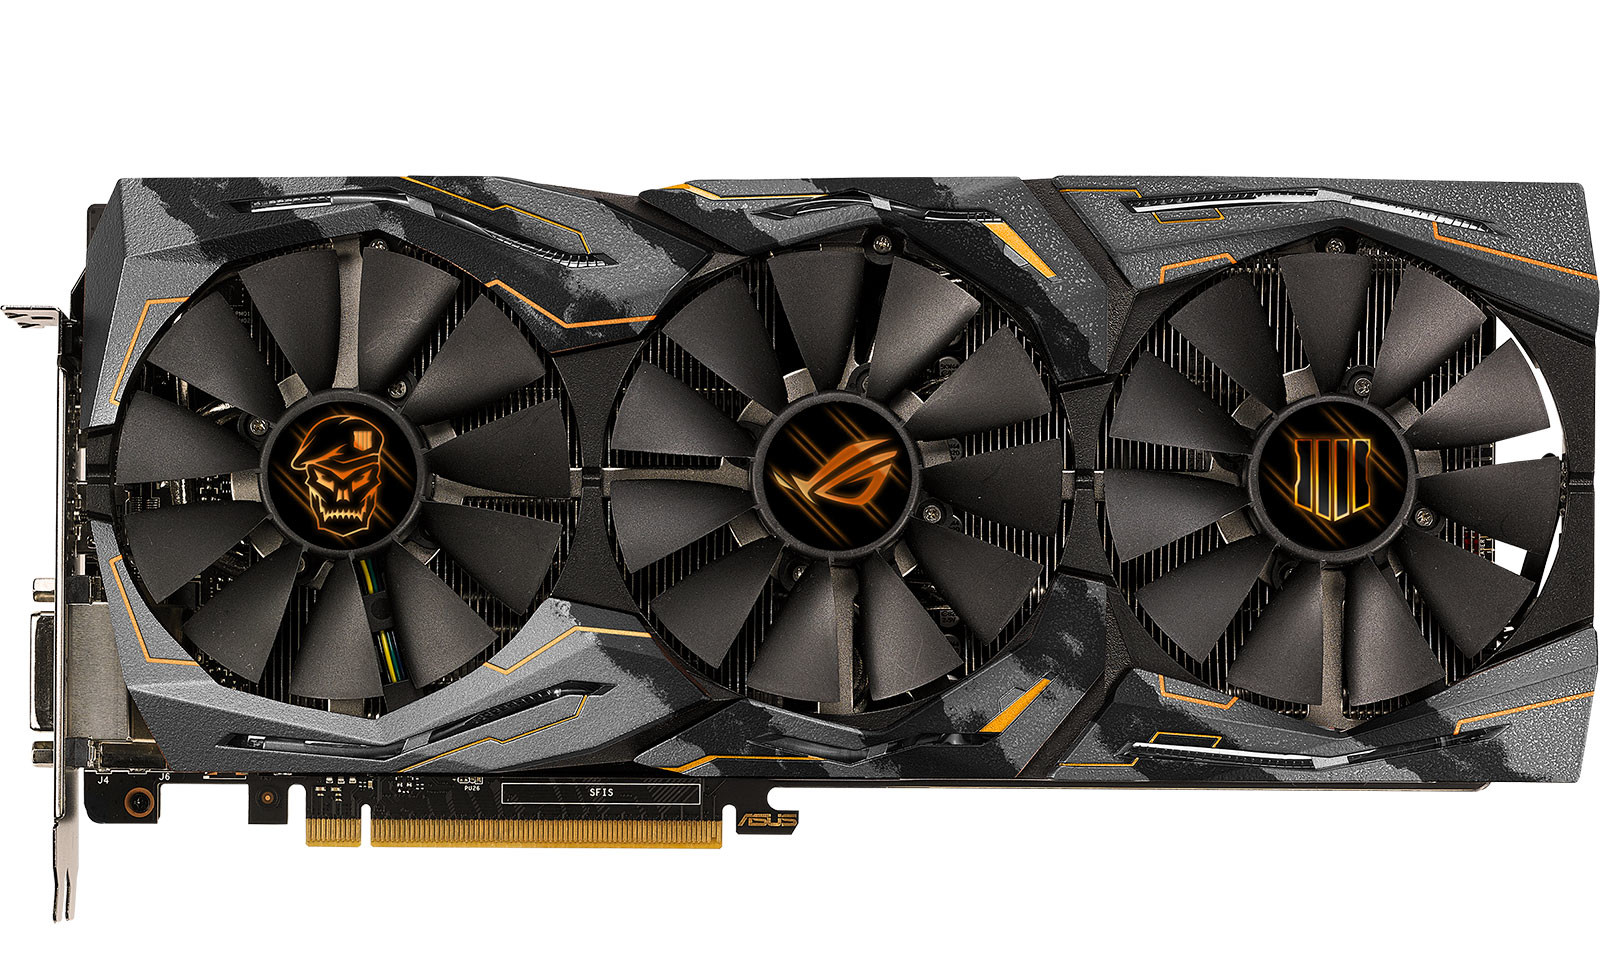 ASUS ROG Lists Call of Duty Black Ops 4 Edition Branded Products